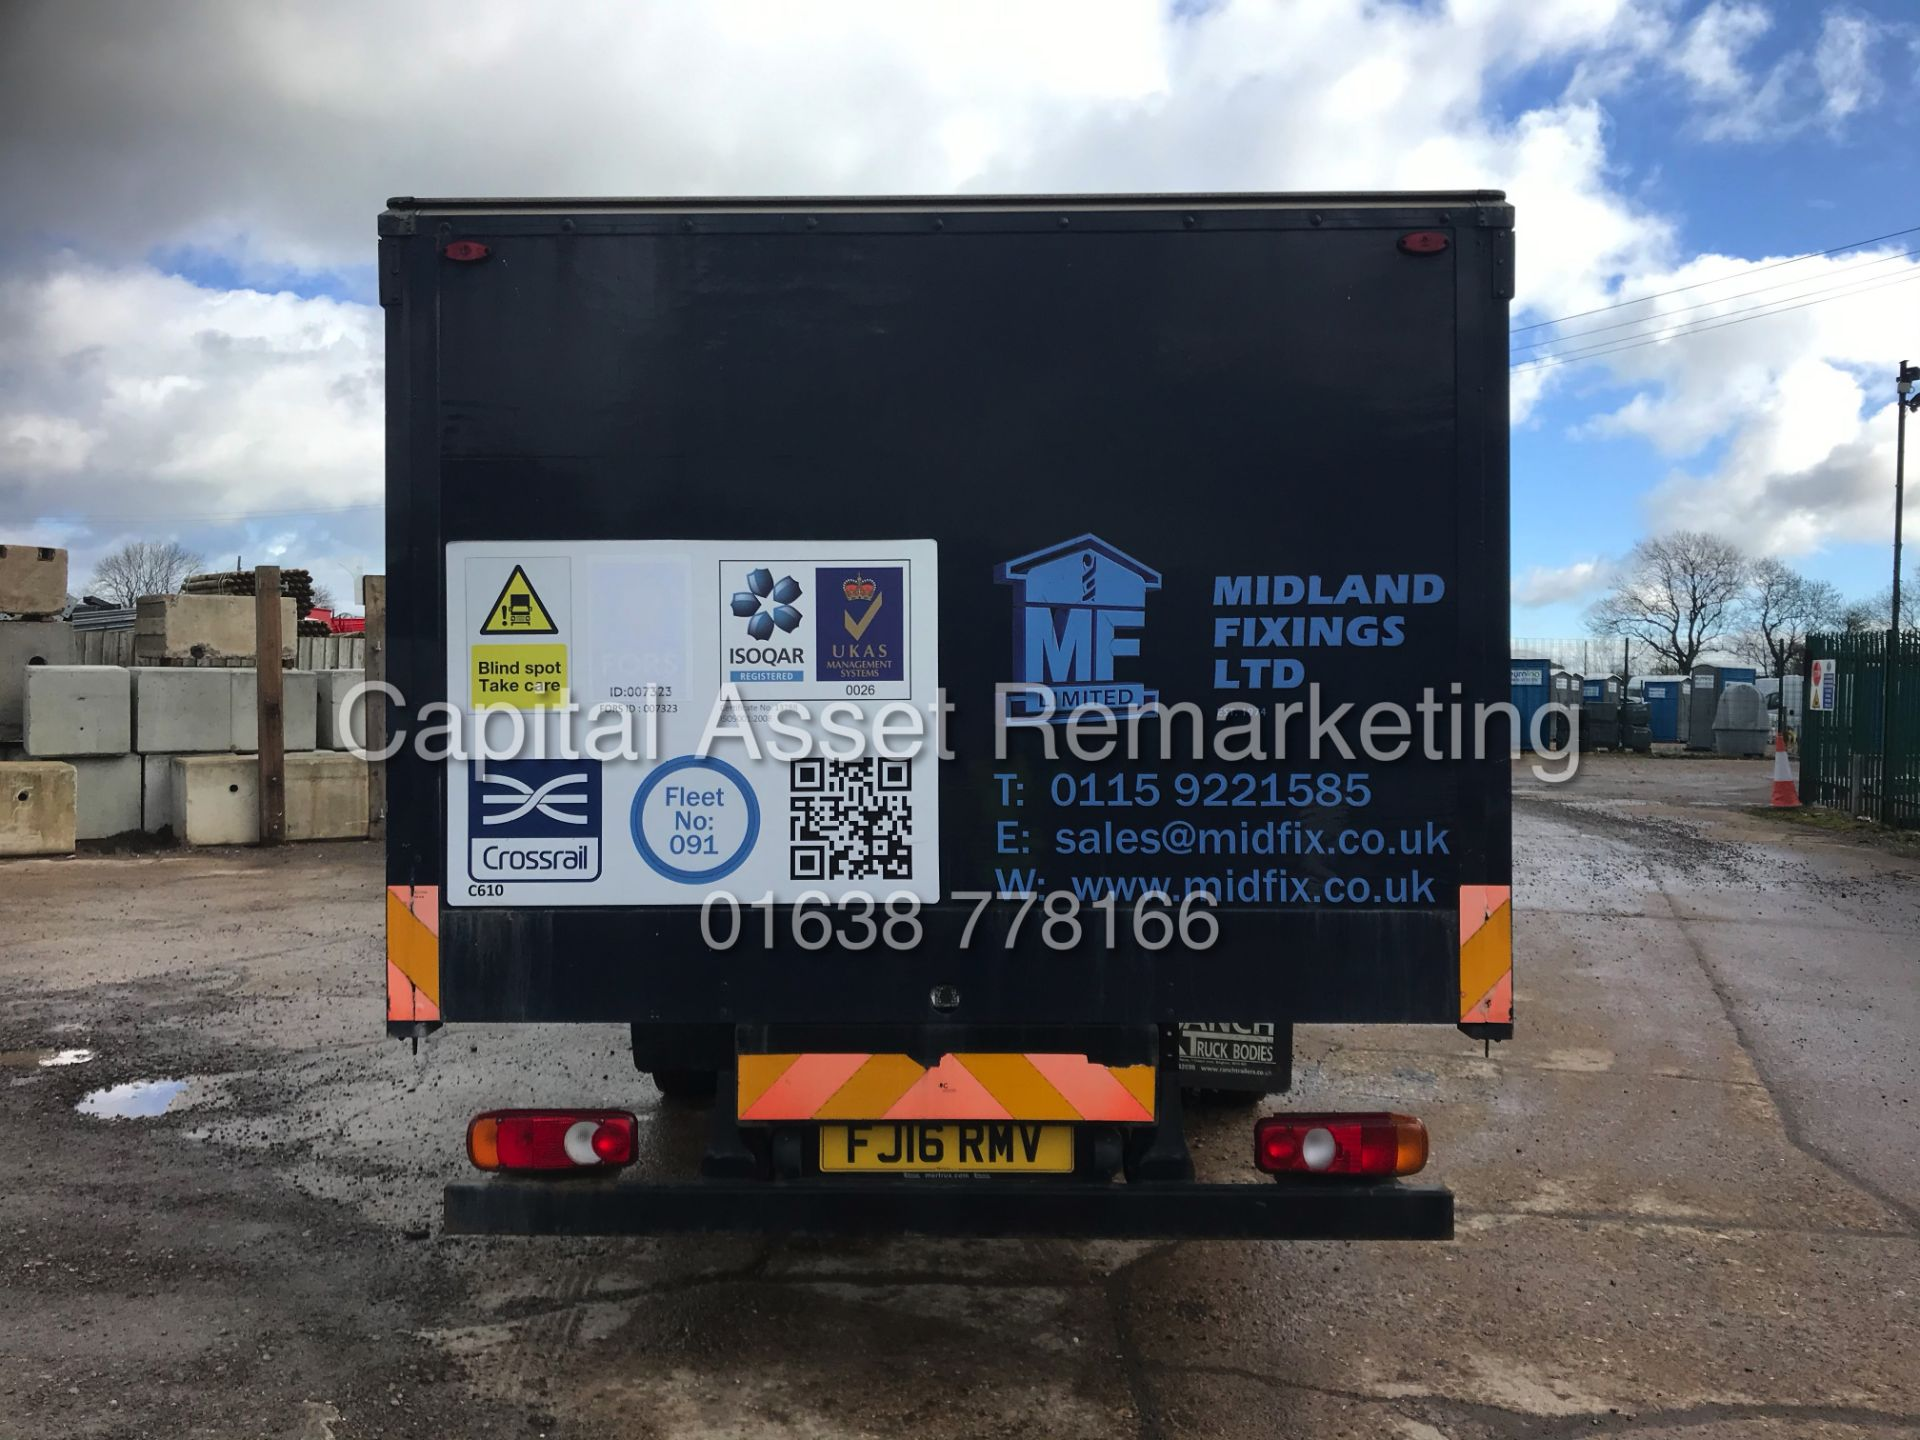 (ON SALE) MITSUBISHI FUSO CANTER 7C18 (16 REG) 1 OWNER *EURO 6* AD-BLUE - 4 WAY CAMERA SYSTEM - Image 9 of 20